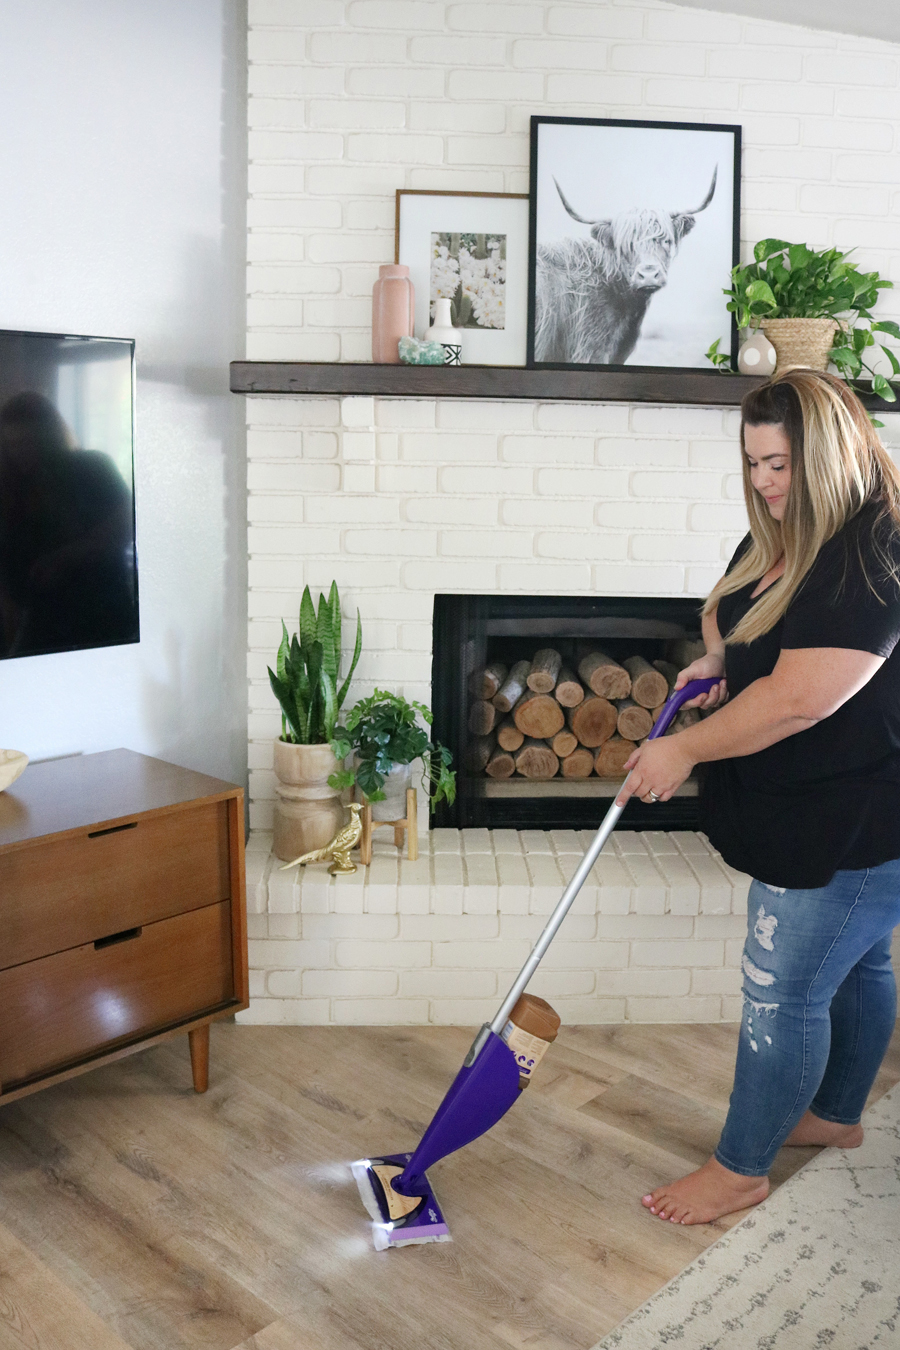 Wood Floor Cleaning Tips with Swiffer WetJet